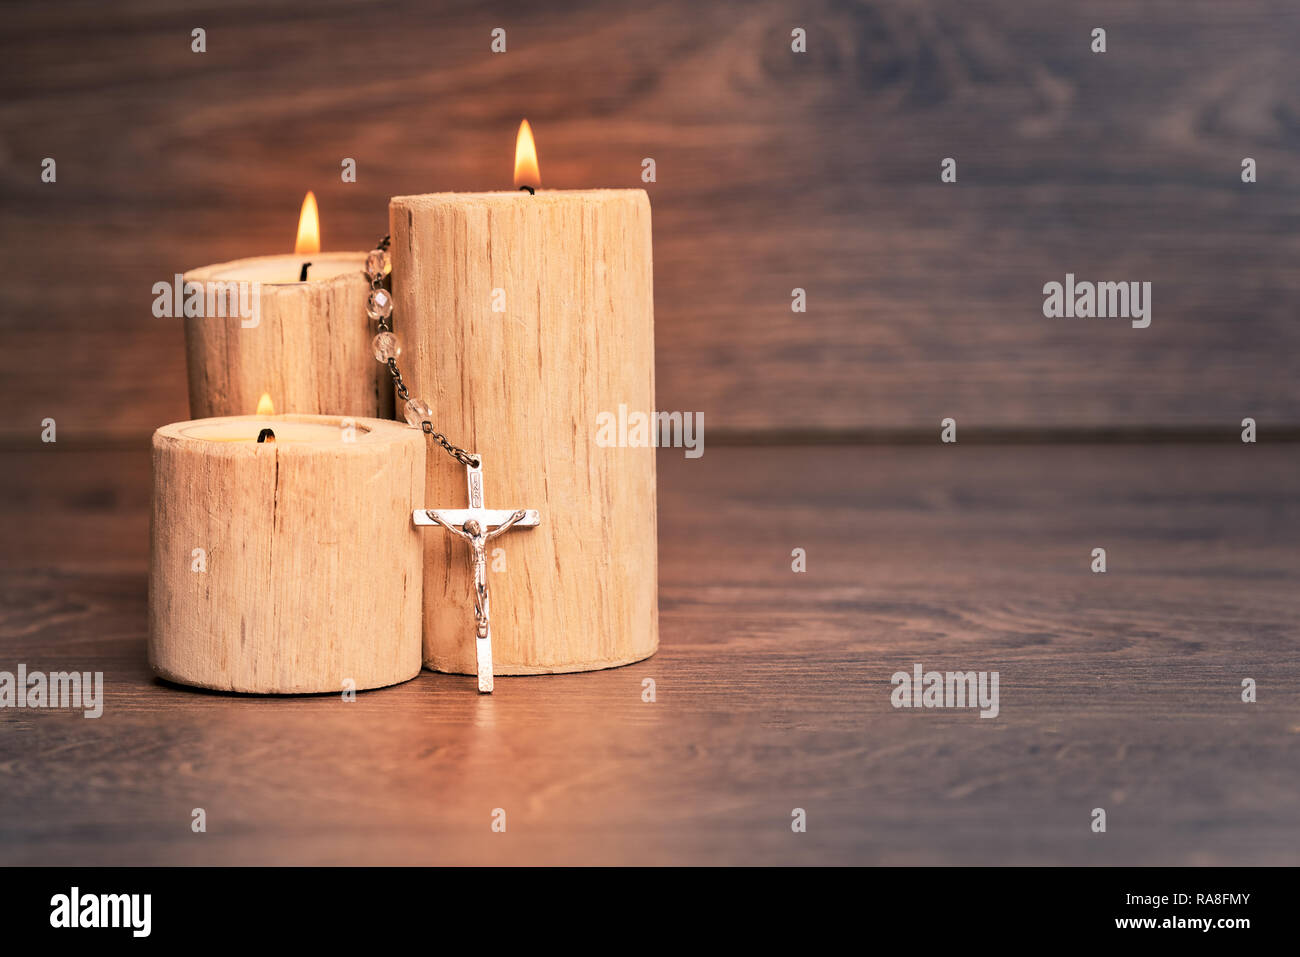 Silver rosary with Jesus on the Candle at wooden table,religion concept,vintage style with split toning. Stock Photo